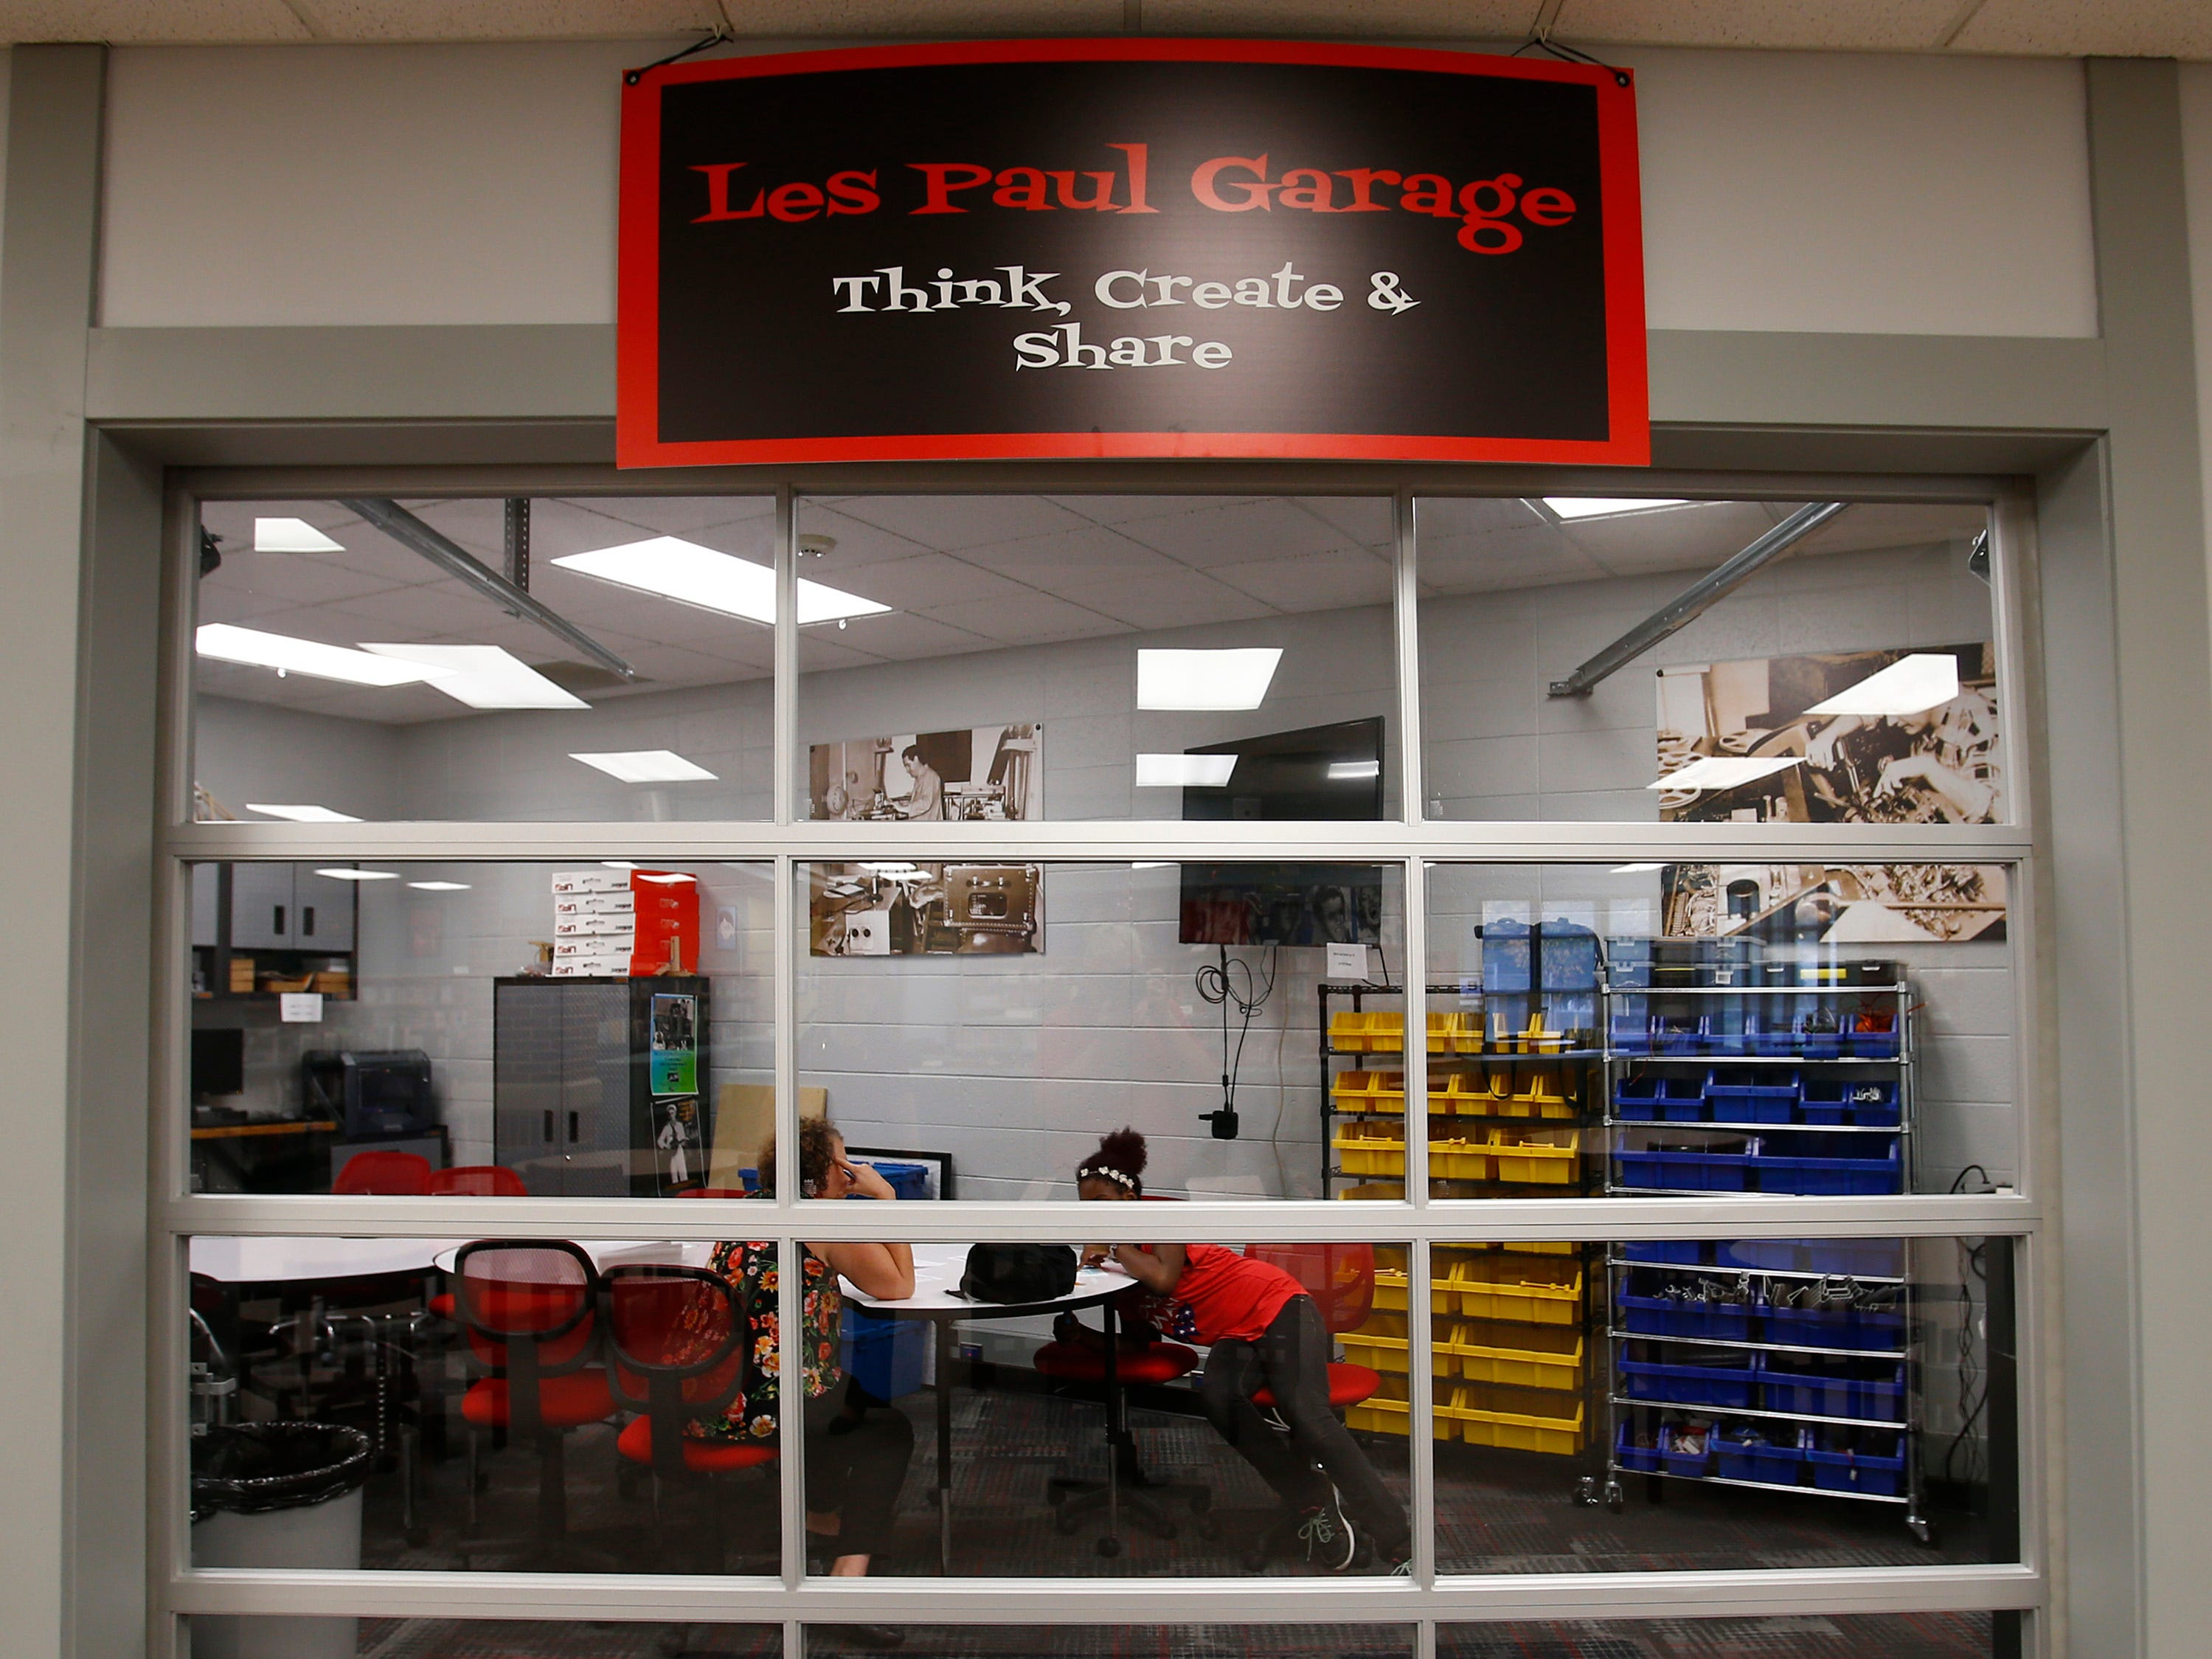 The Les Paul Middle School media center would be redesigned to be more of a collaborative space, like its existing Les Paul Garage, than a traditional library as part of the referendum.